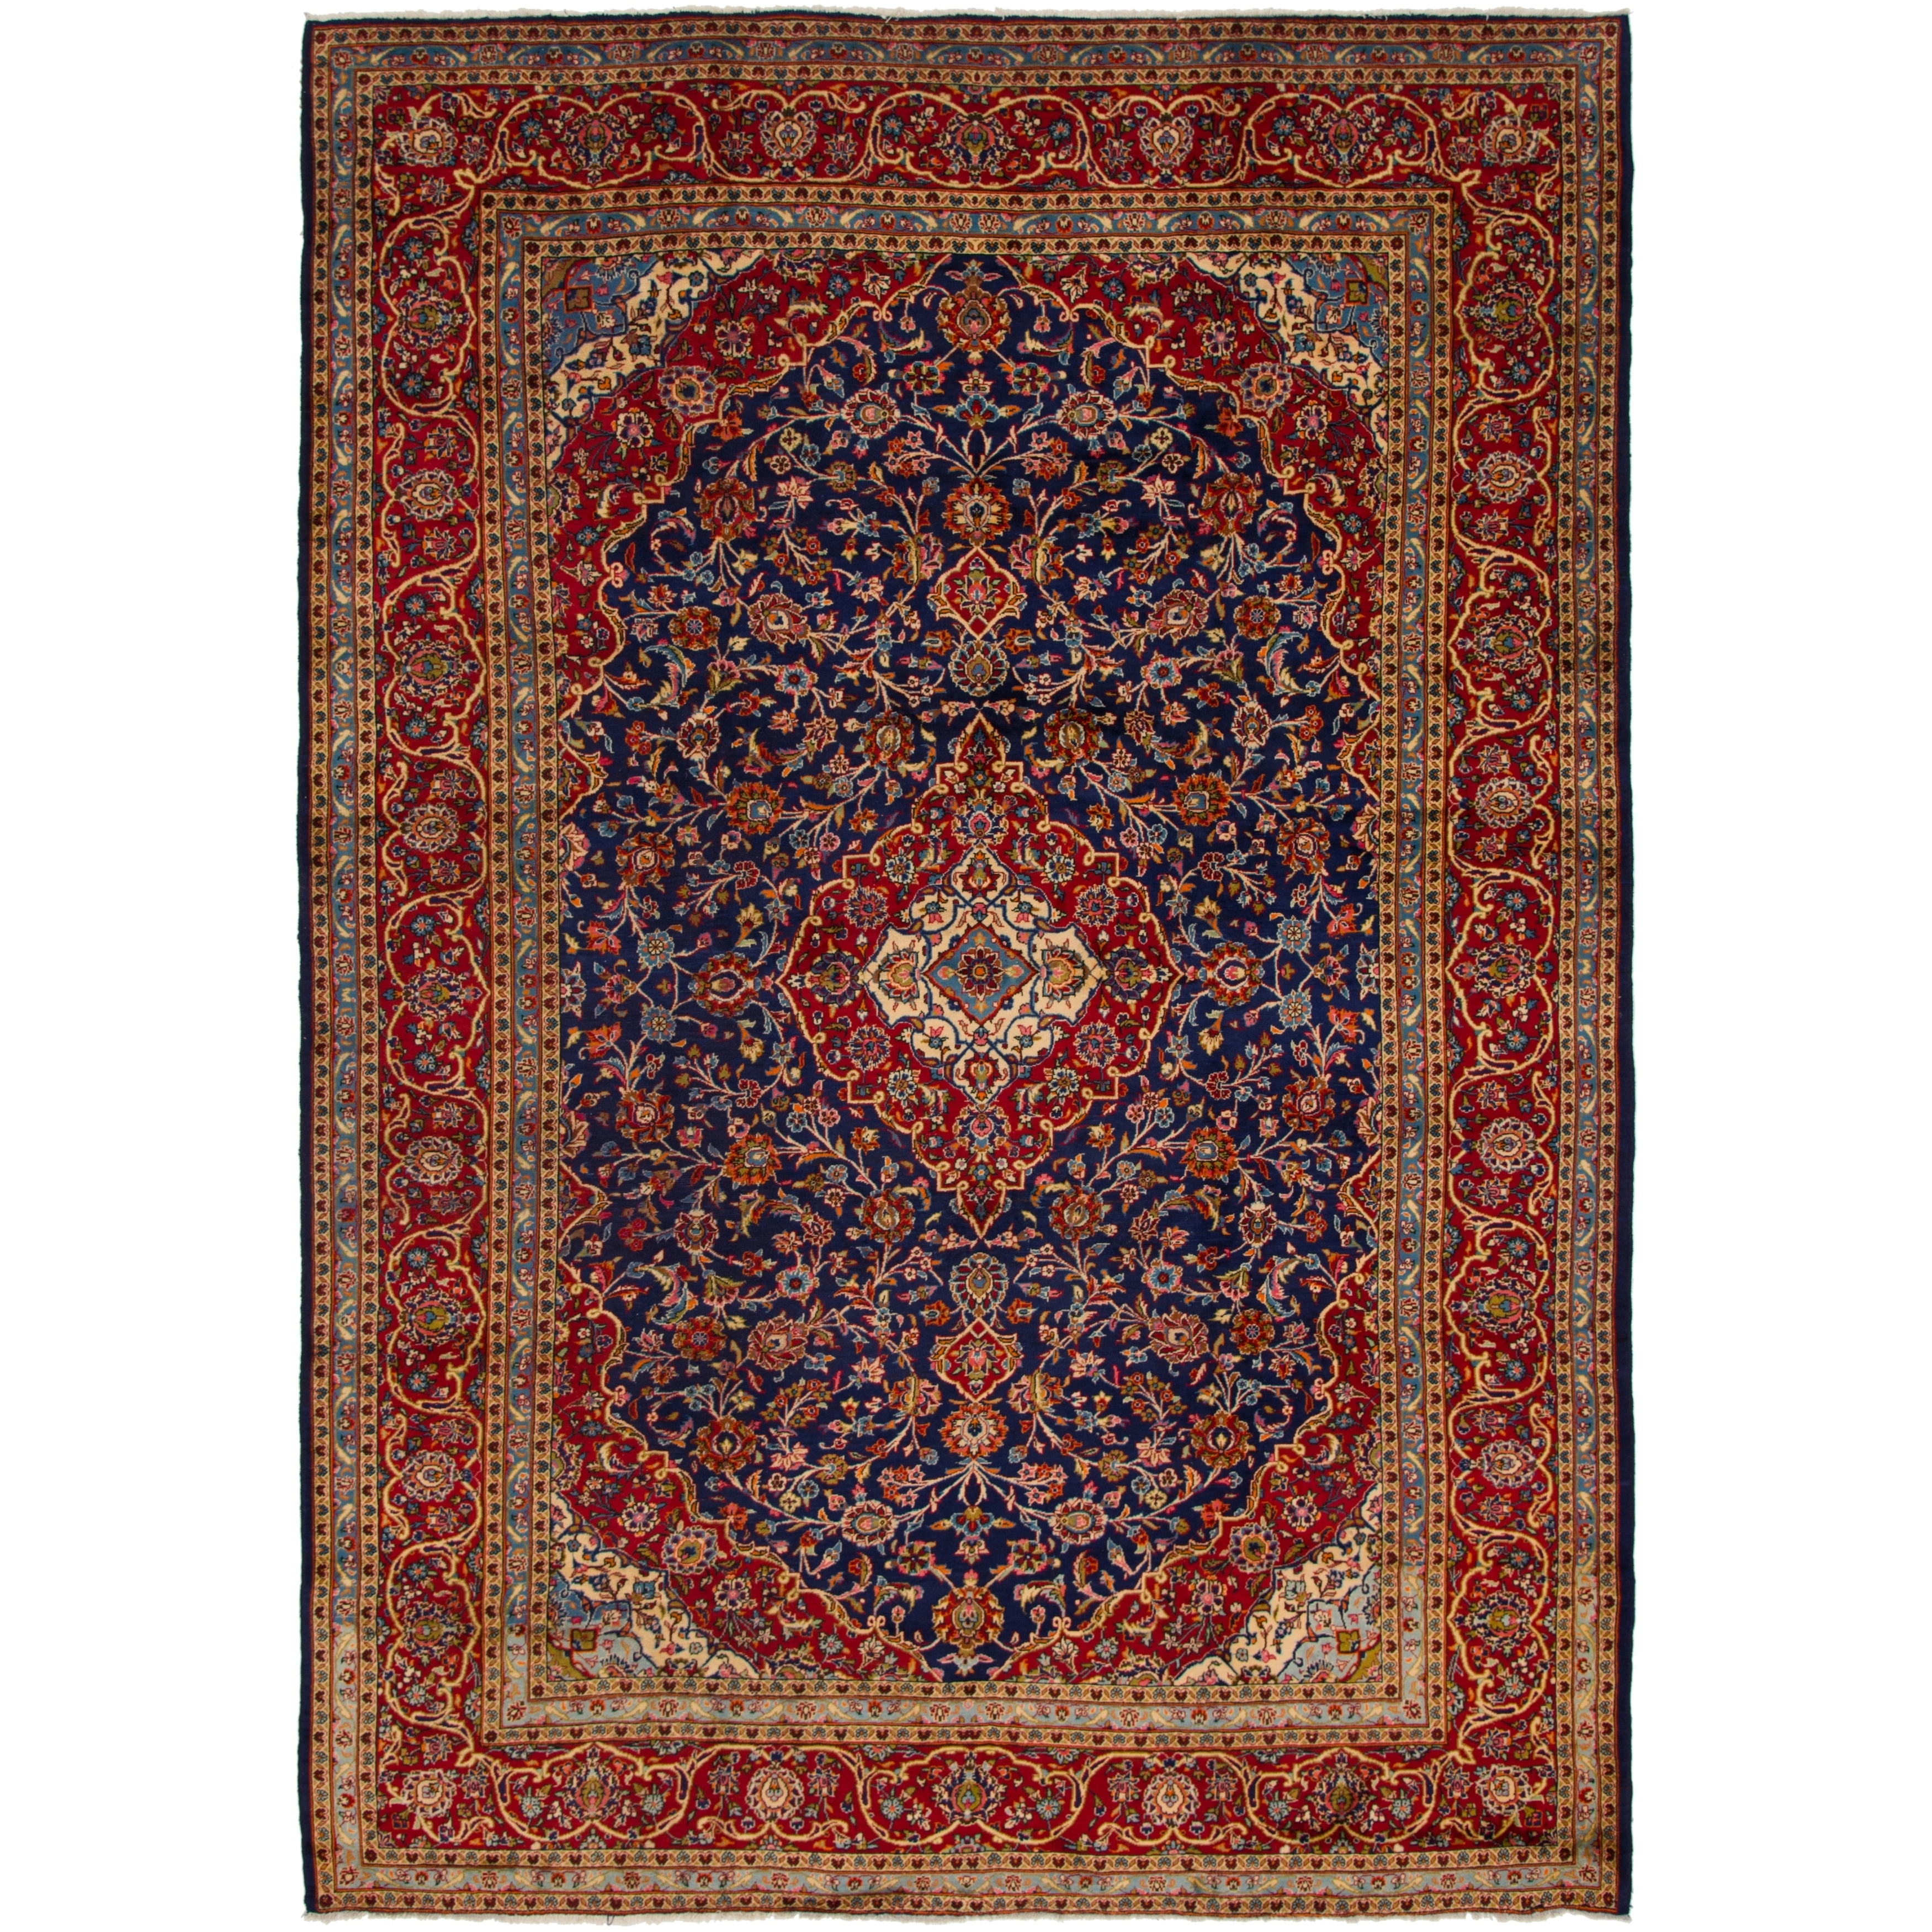 Hand Knotted Kashan Semi Antique Wool Area Rug - 9 8 x 13 8 (Navy blue - 9 8 x 13 8)